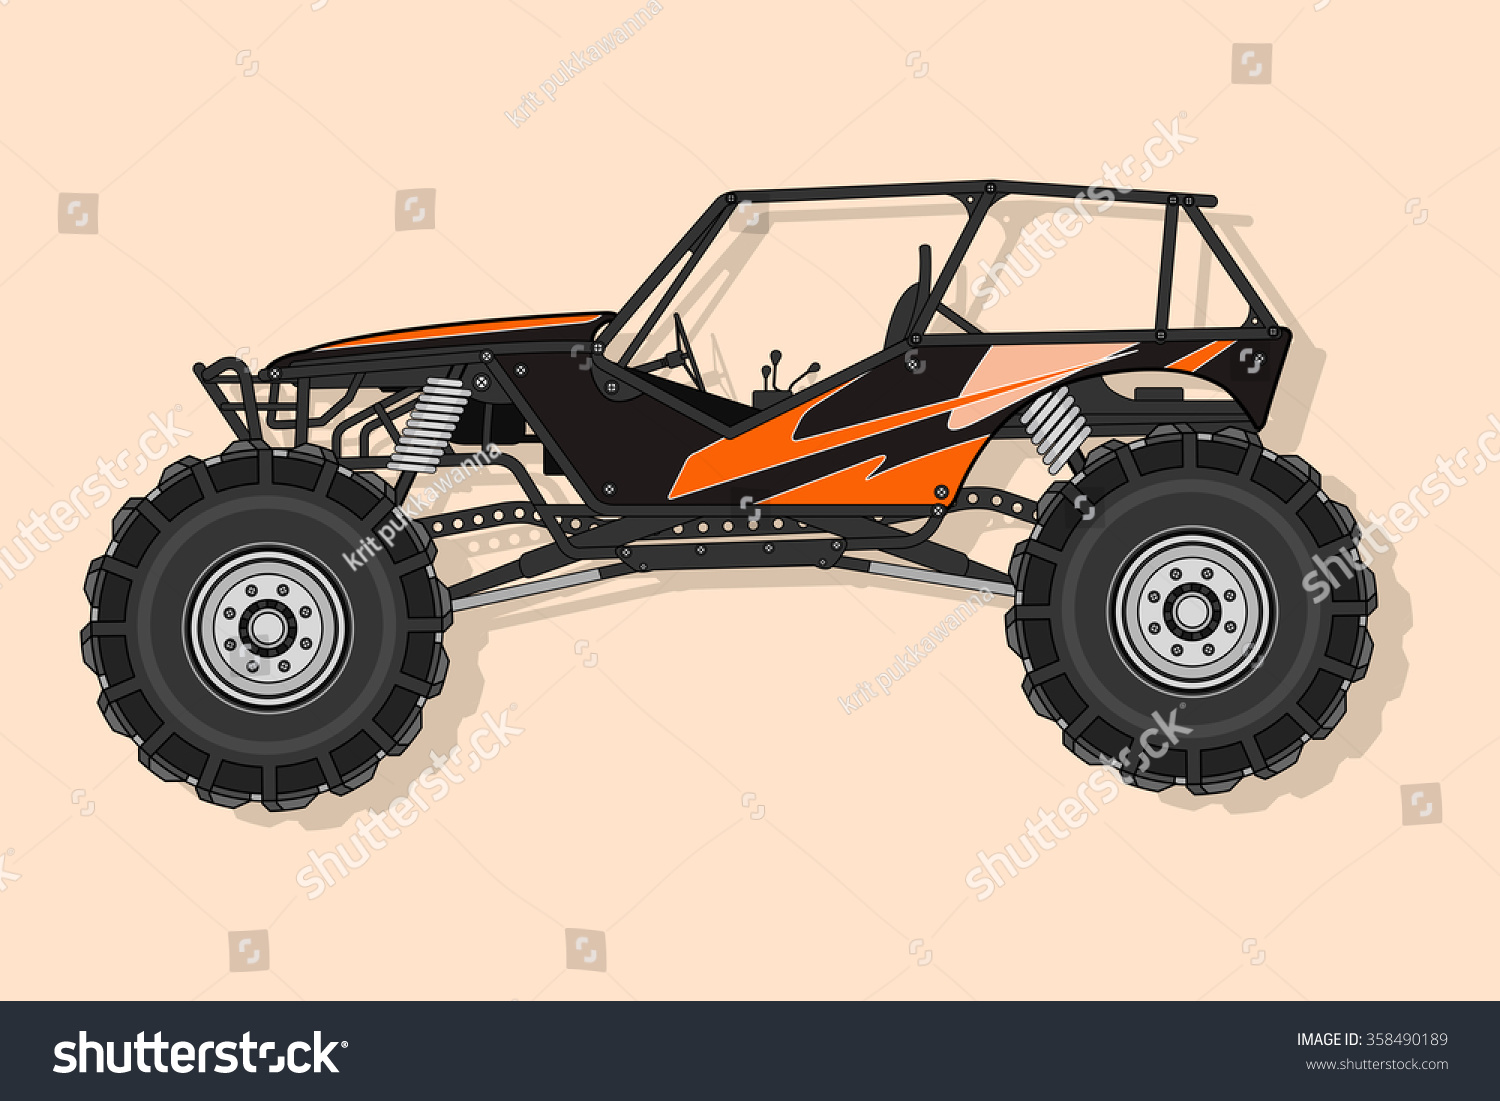 off road buggy 4x4 vector stock vector 358490189. Black Bedroom Furniture Sets. Home Design Ideas